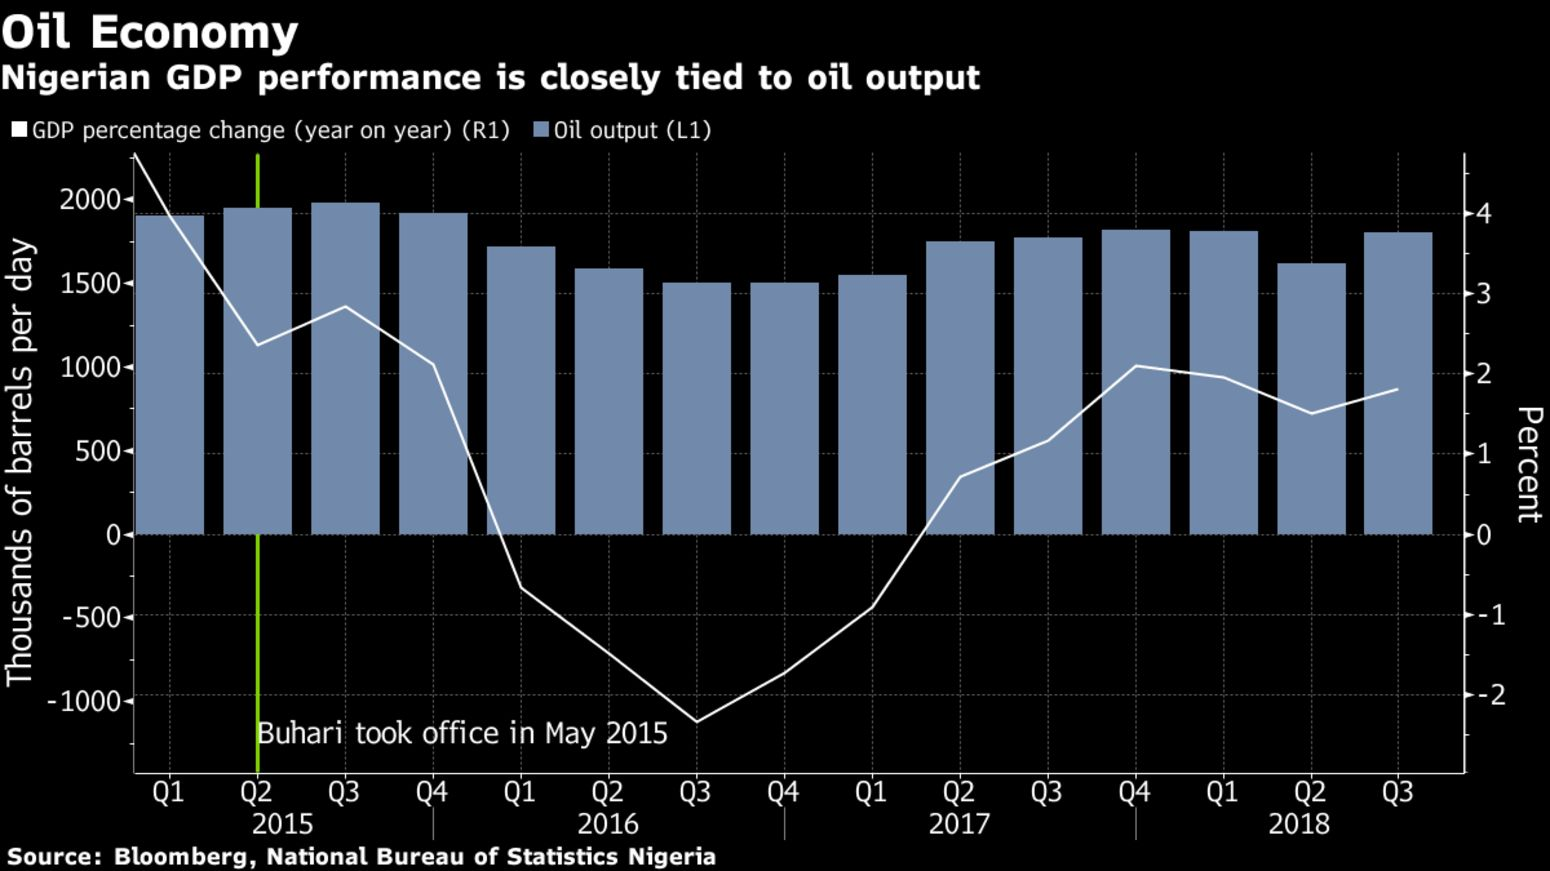 Nigerian GDP performance is closely tied to oil output